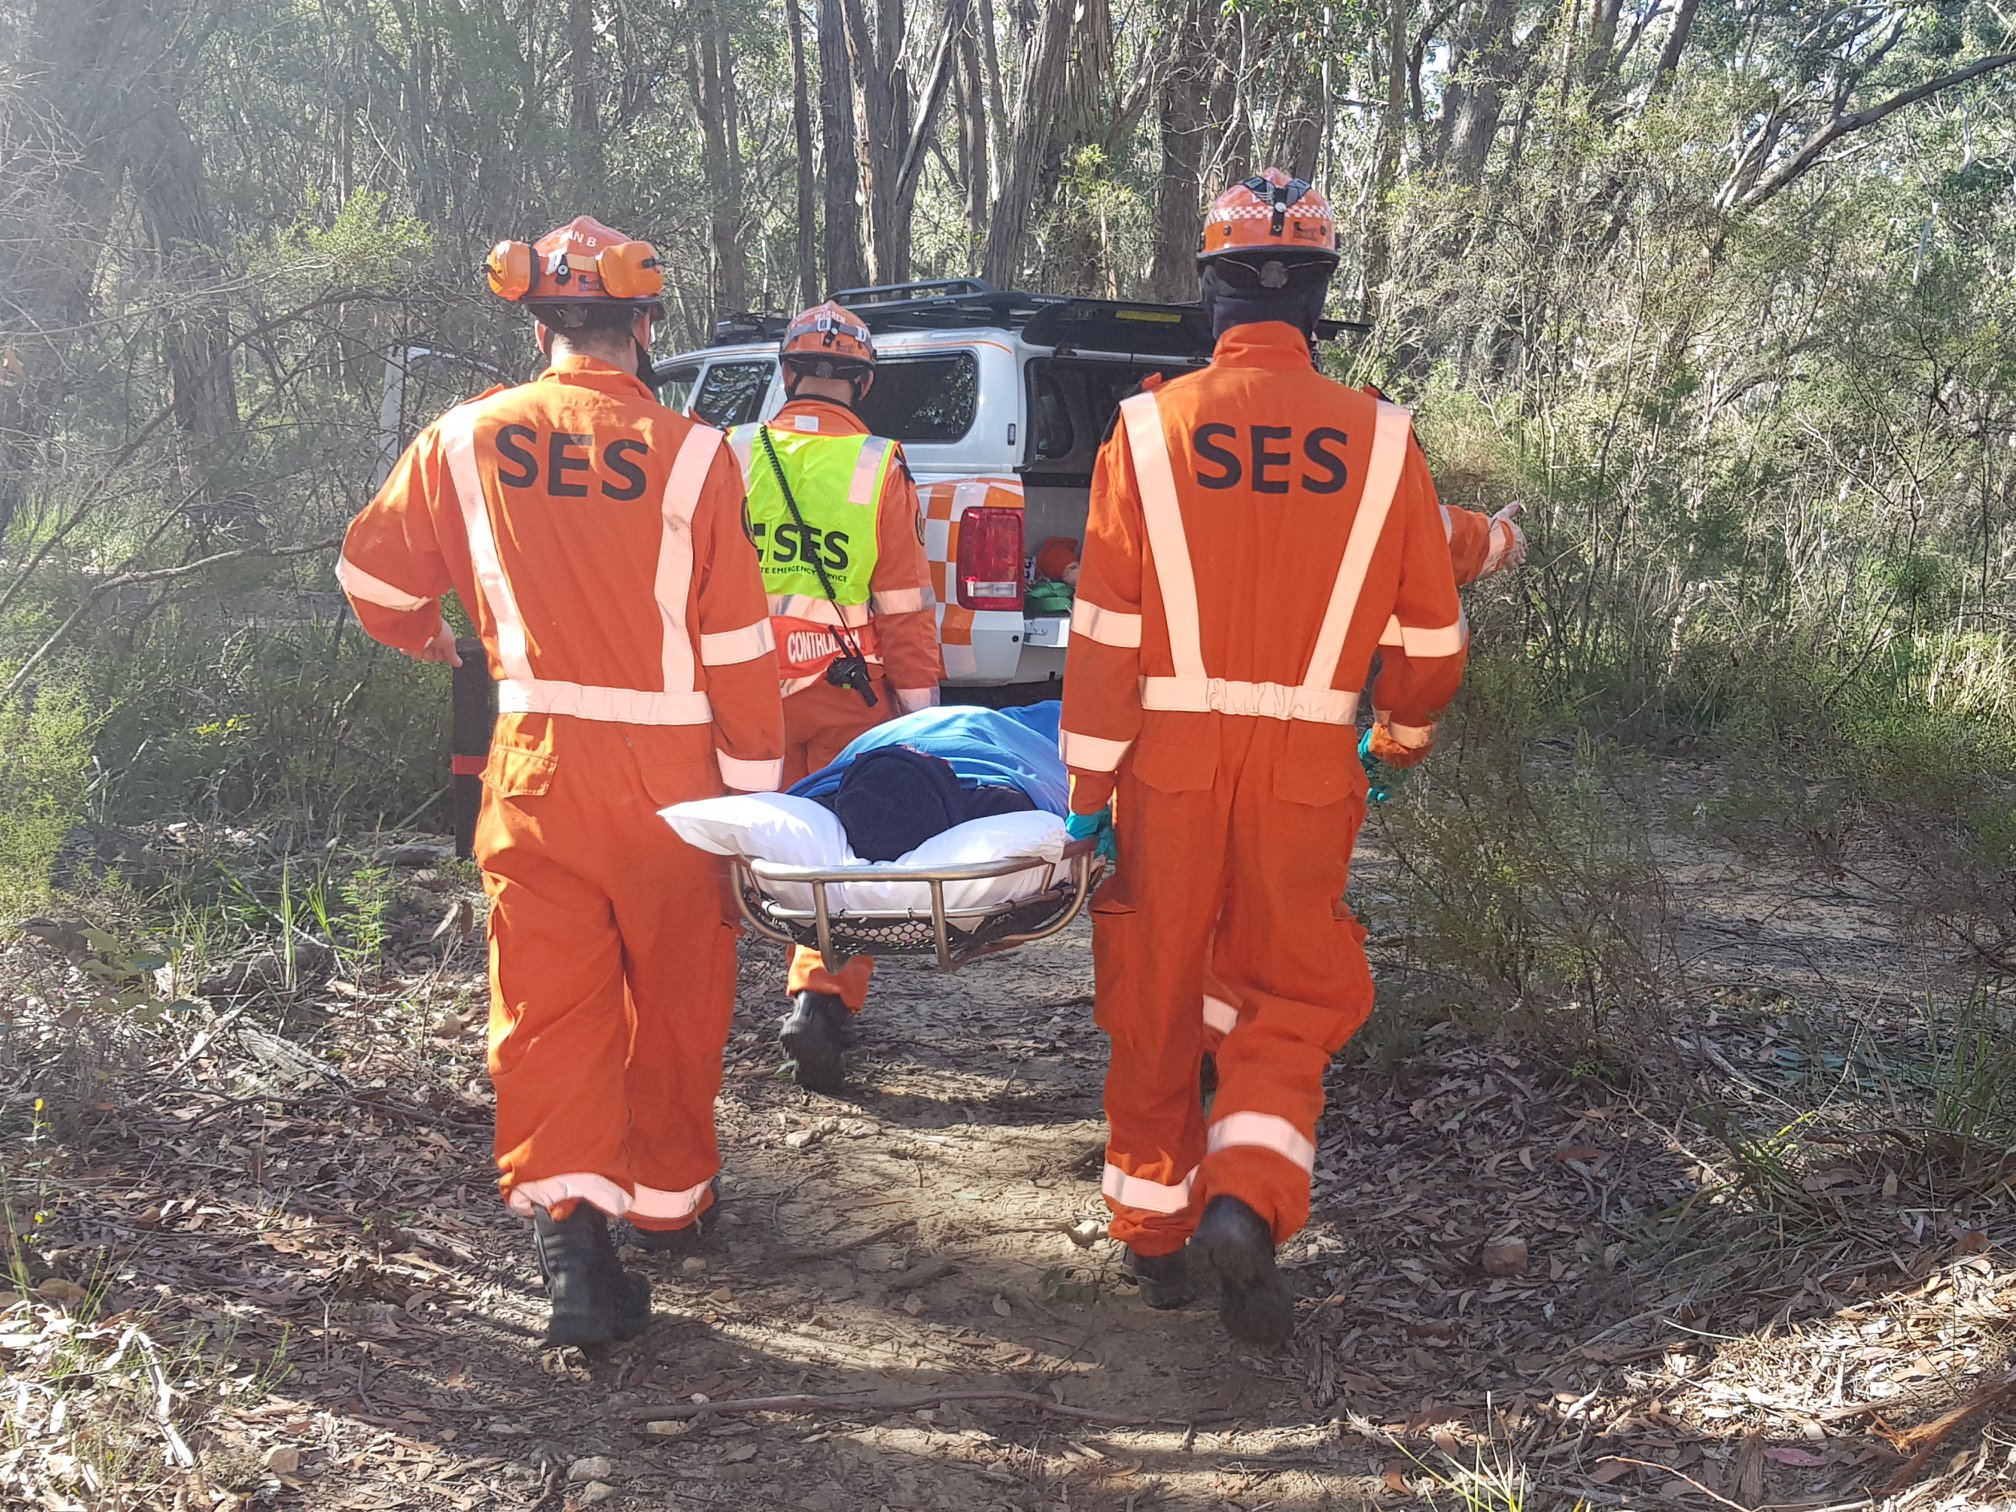 NSW SES Wingecarribee 'push up' for mental health